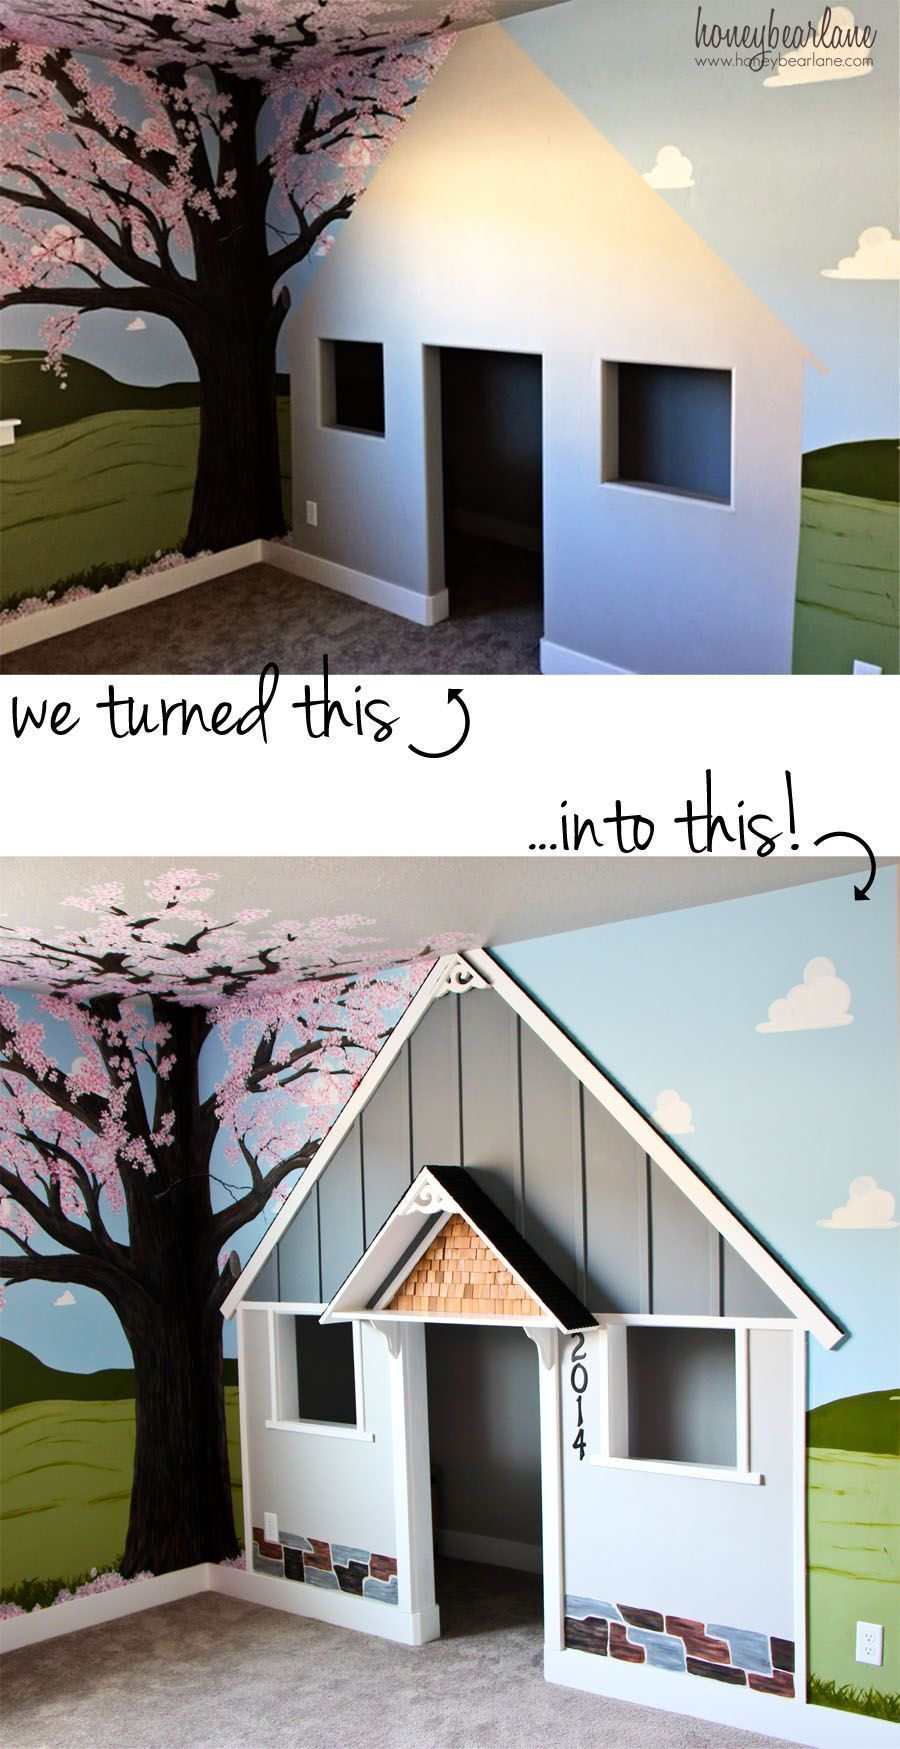 Walk In Closet Turned Into Adorable Playhouse With Some Building Materials,  Great Painting And